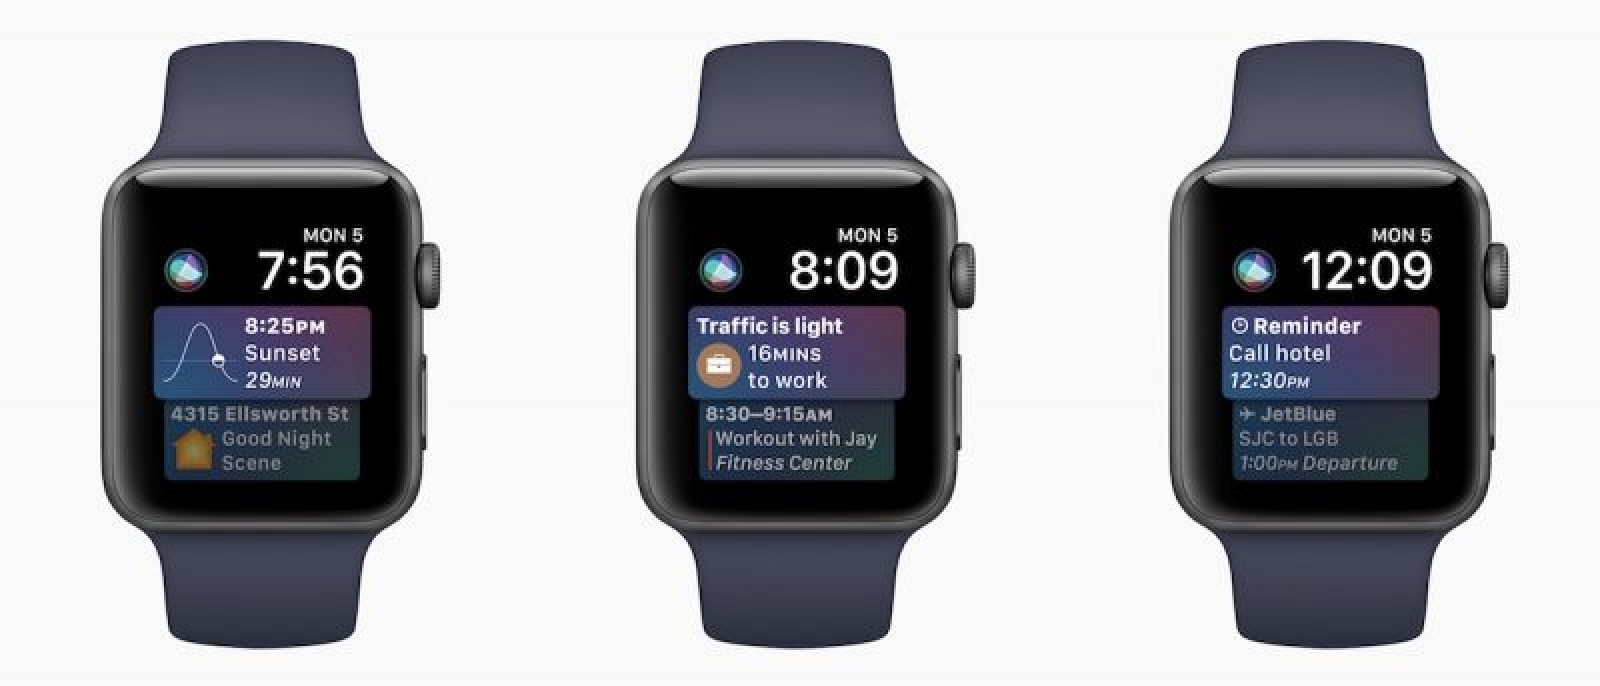 How to Download watchOS4 and update Apple Watch for Developers